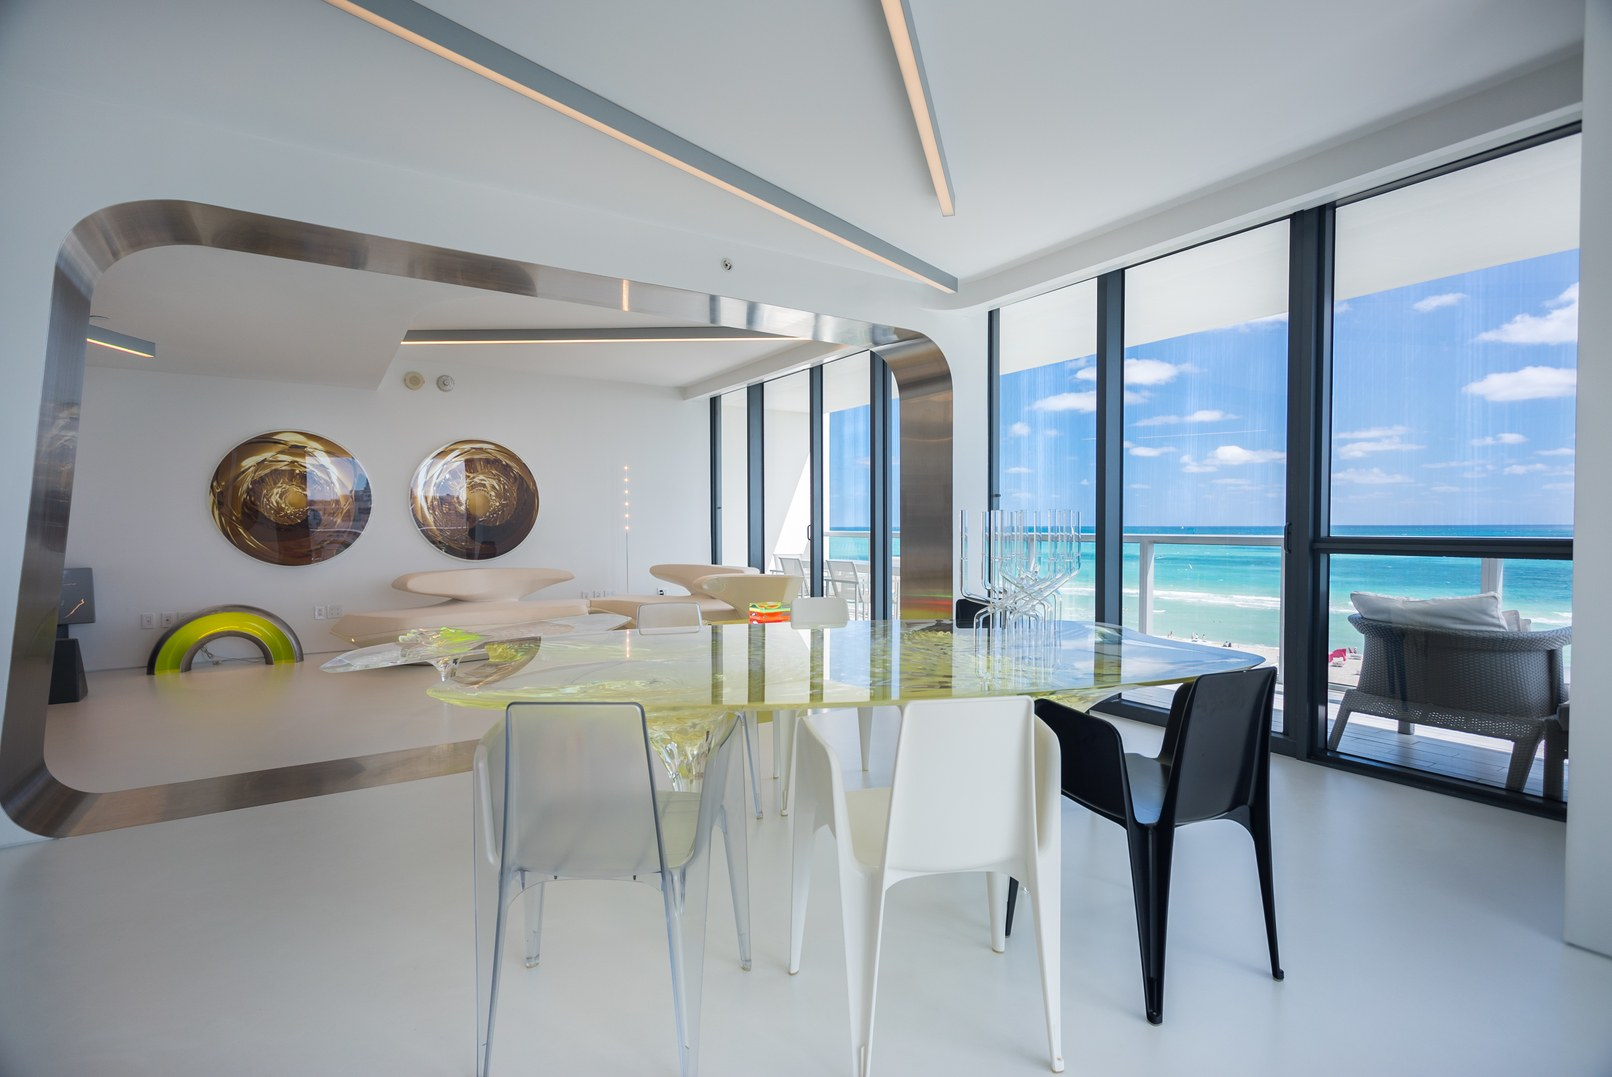 Inside Zaha Hadid's for-sale condo in Miami Beach with the beach and ocean in the distance